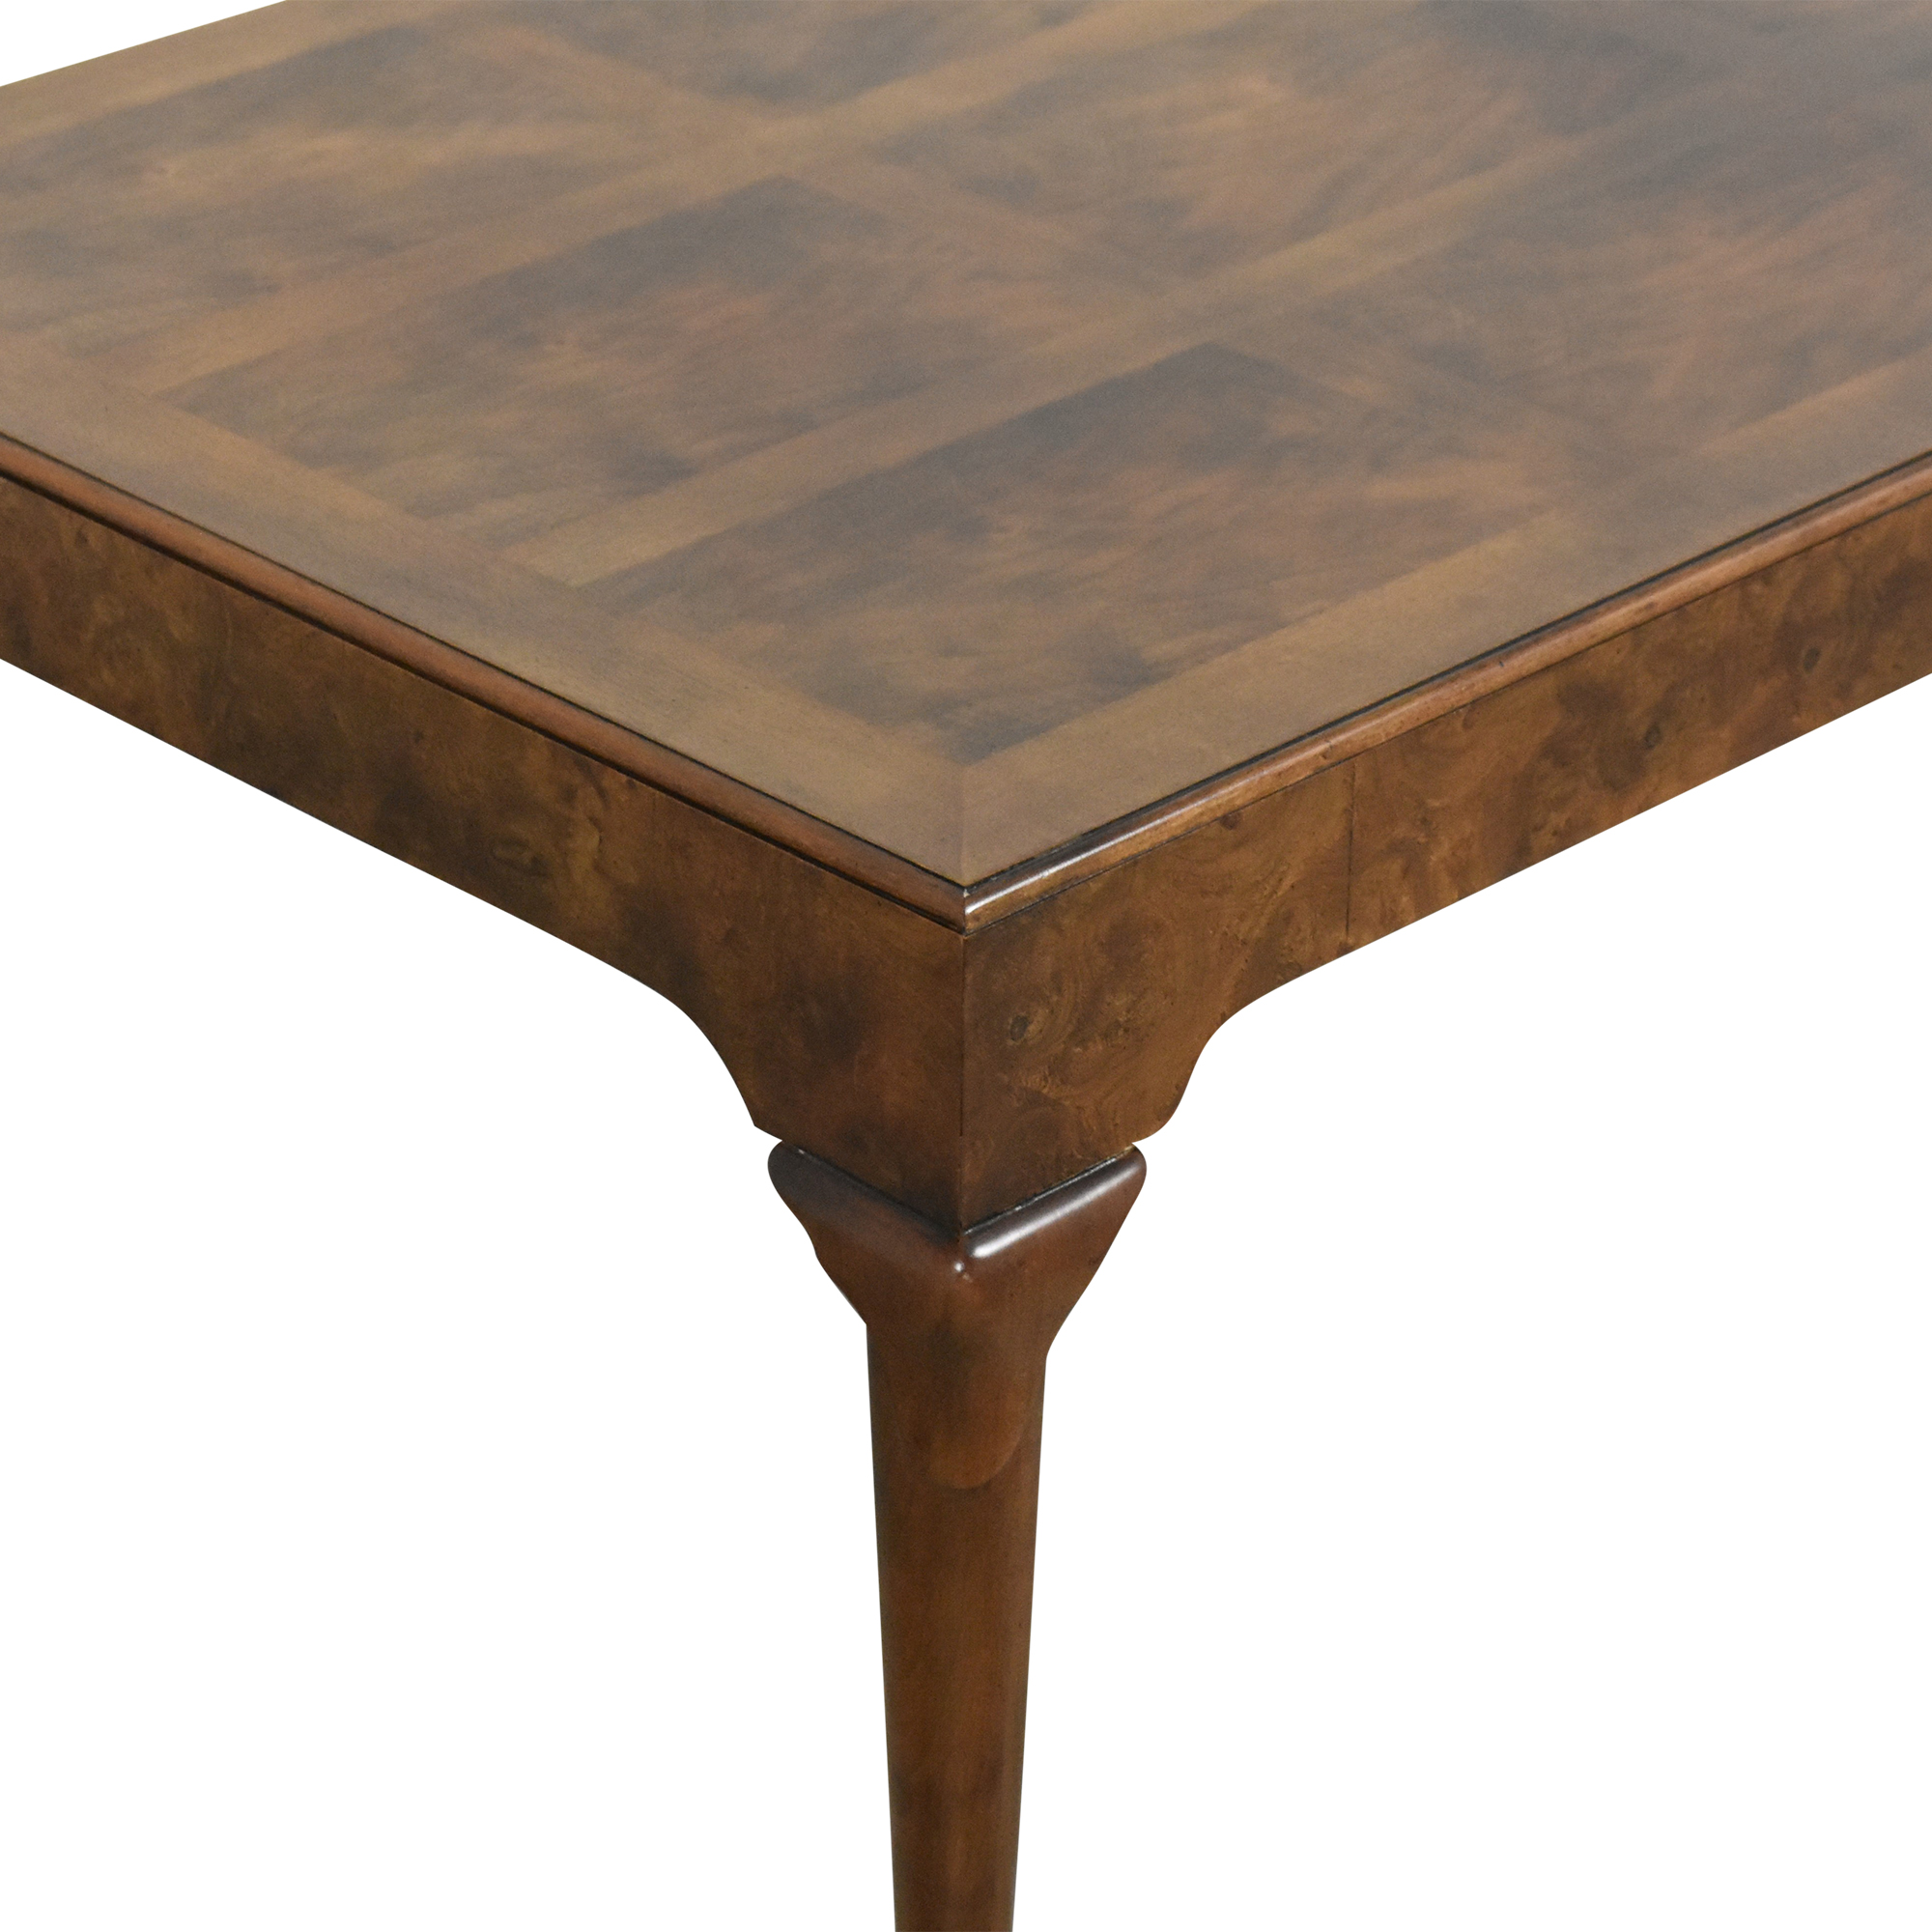 Baker Furniture Baker Furniture Parquet Coffee Table second hand